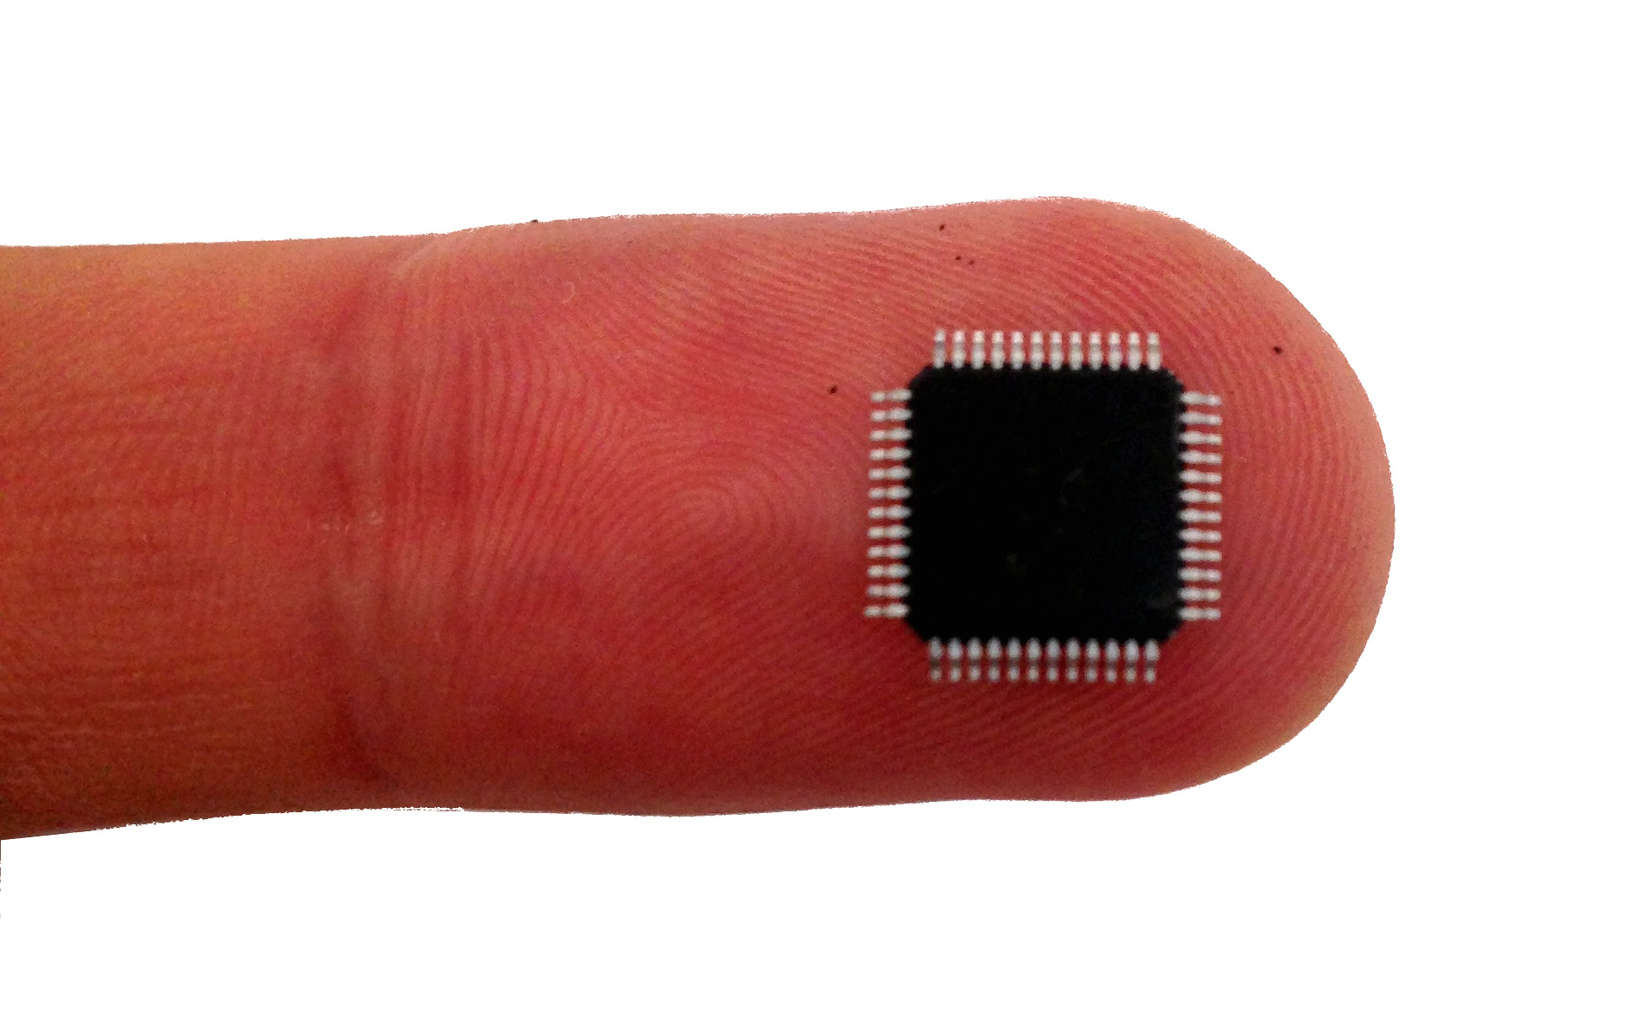 The Simple Guide To Learning Electronics For Beginners And Switches Build A Variety Of Circuits Here Is Handout Microcontroller Chip On Finger Now That You Have Built Some